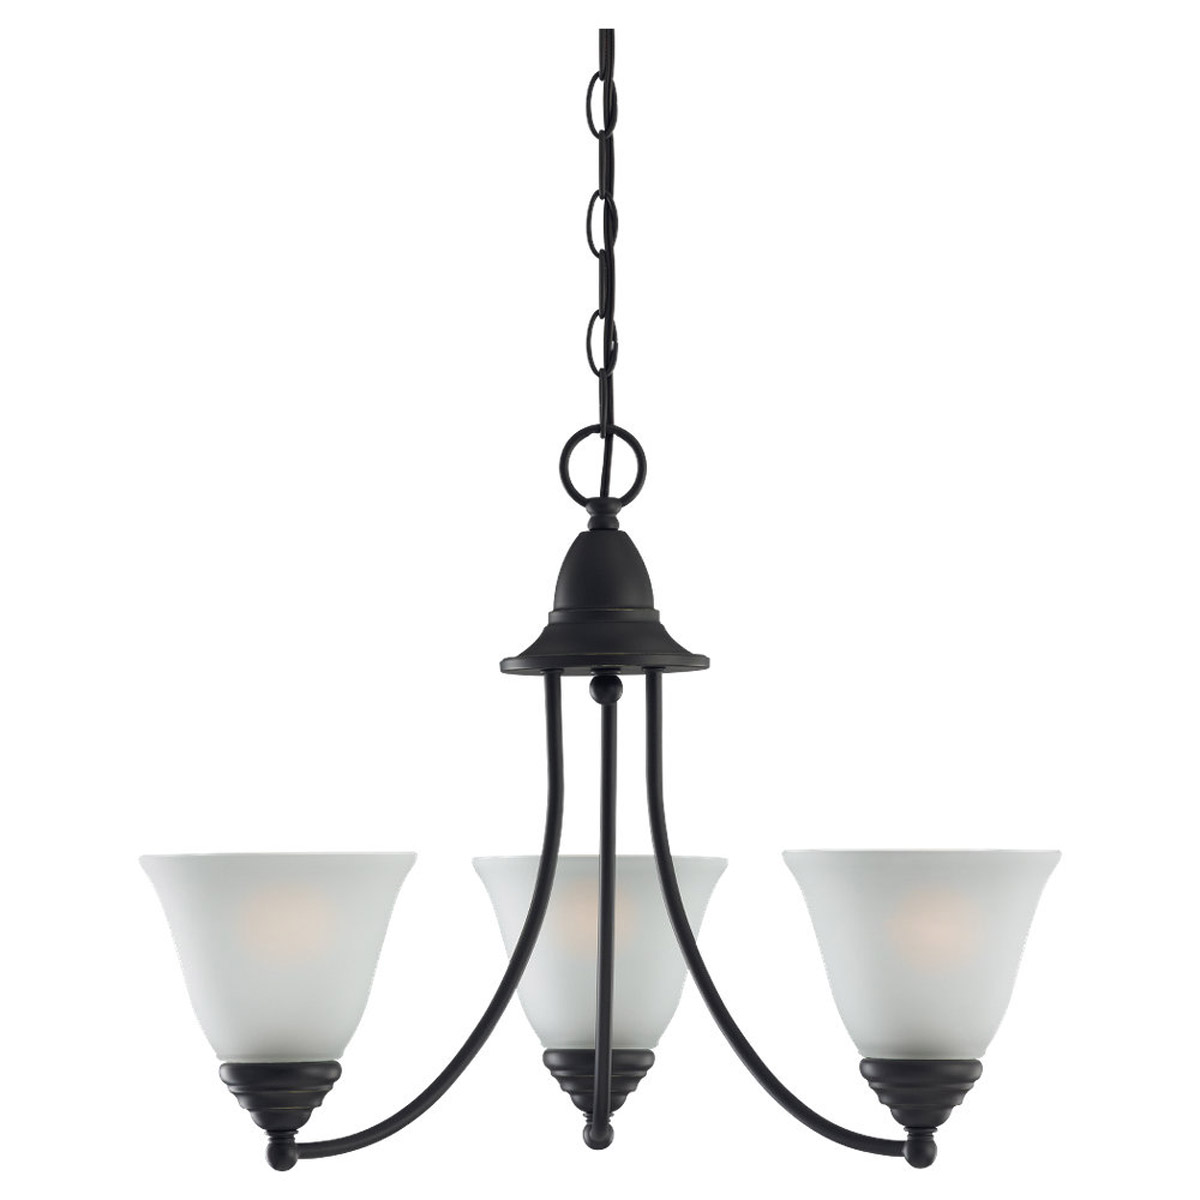 Sea Gull Lighting Albany 3 Light Chandelier in Heirloom Bronze 31575-782